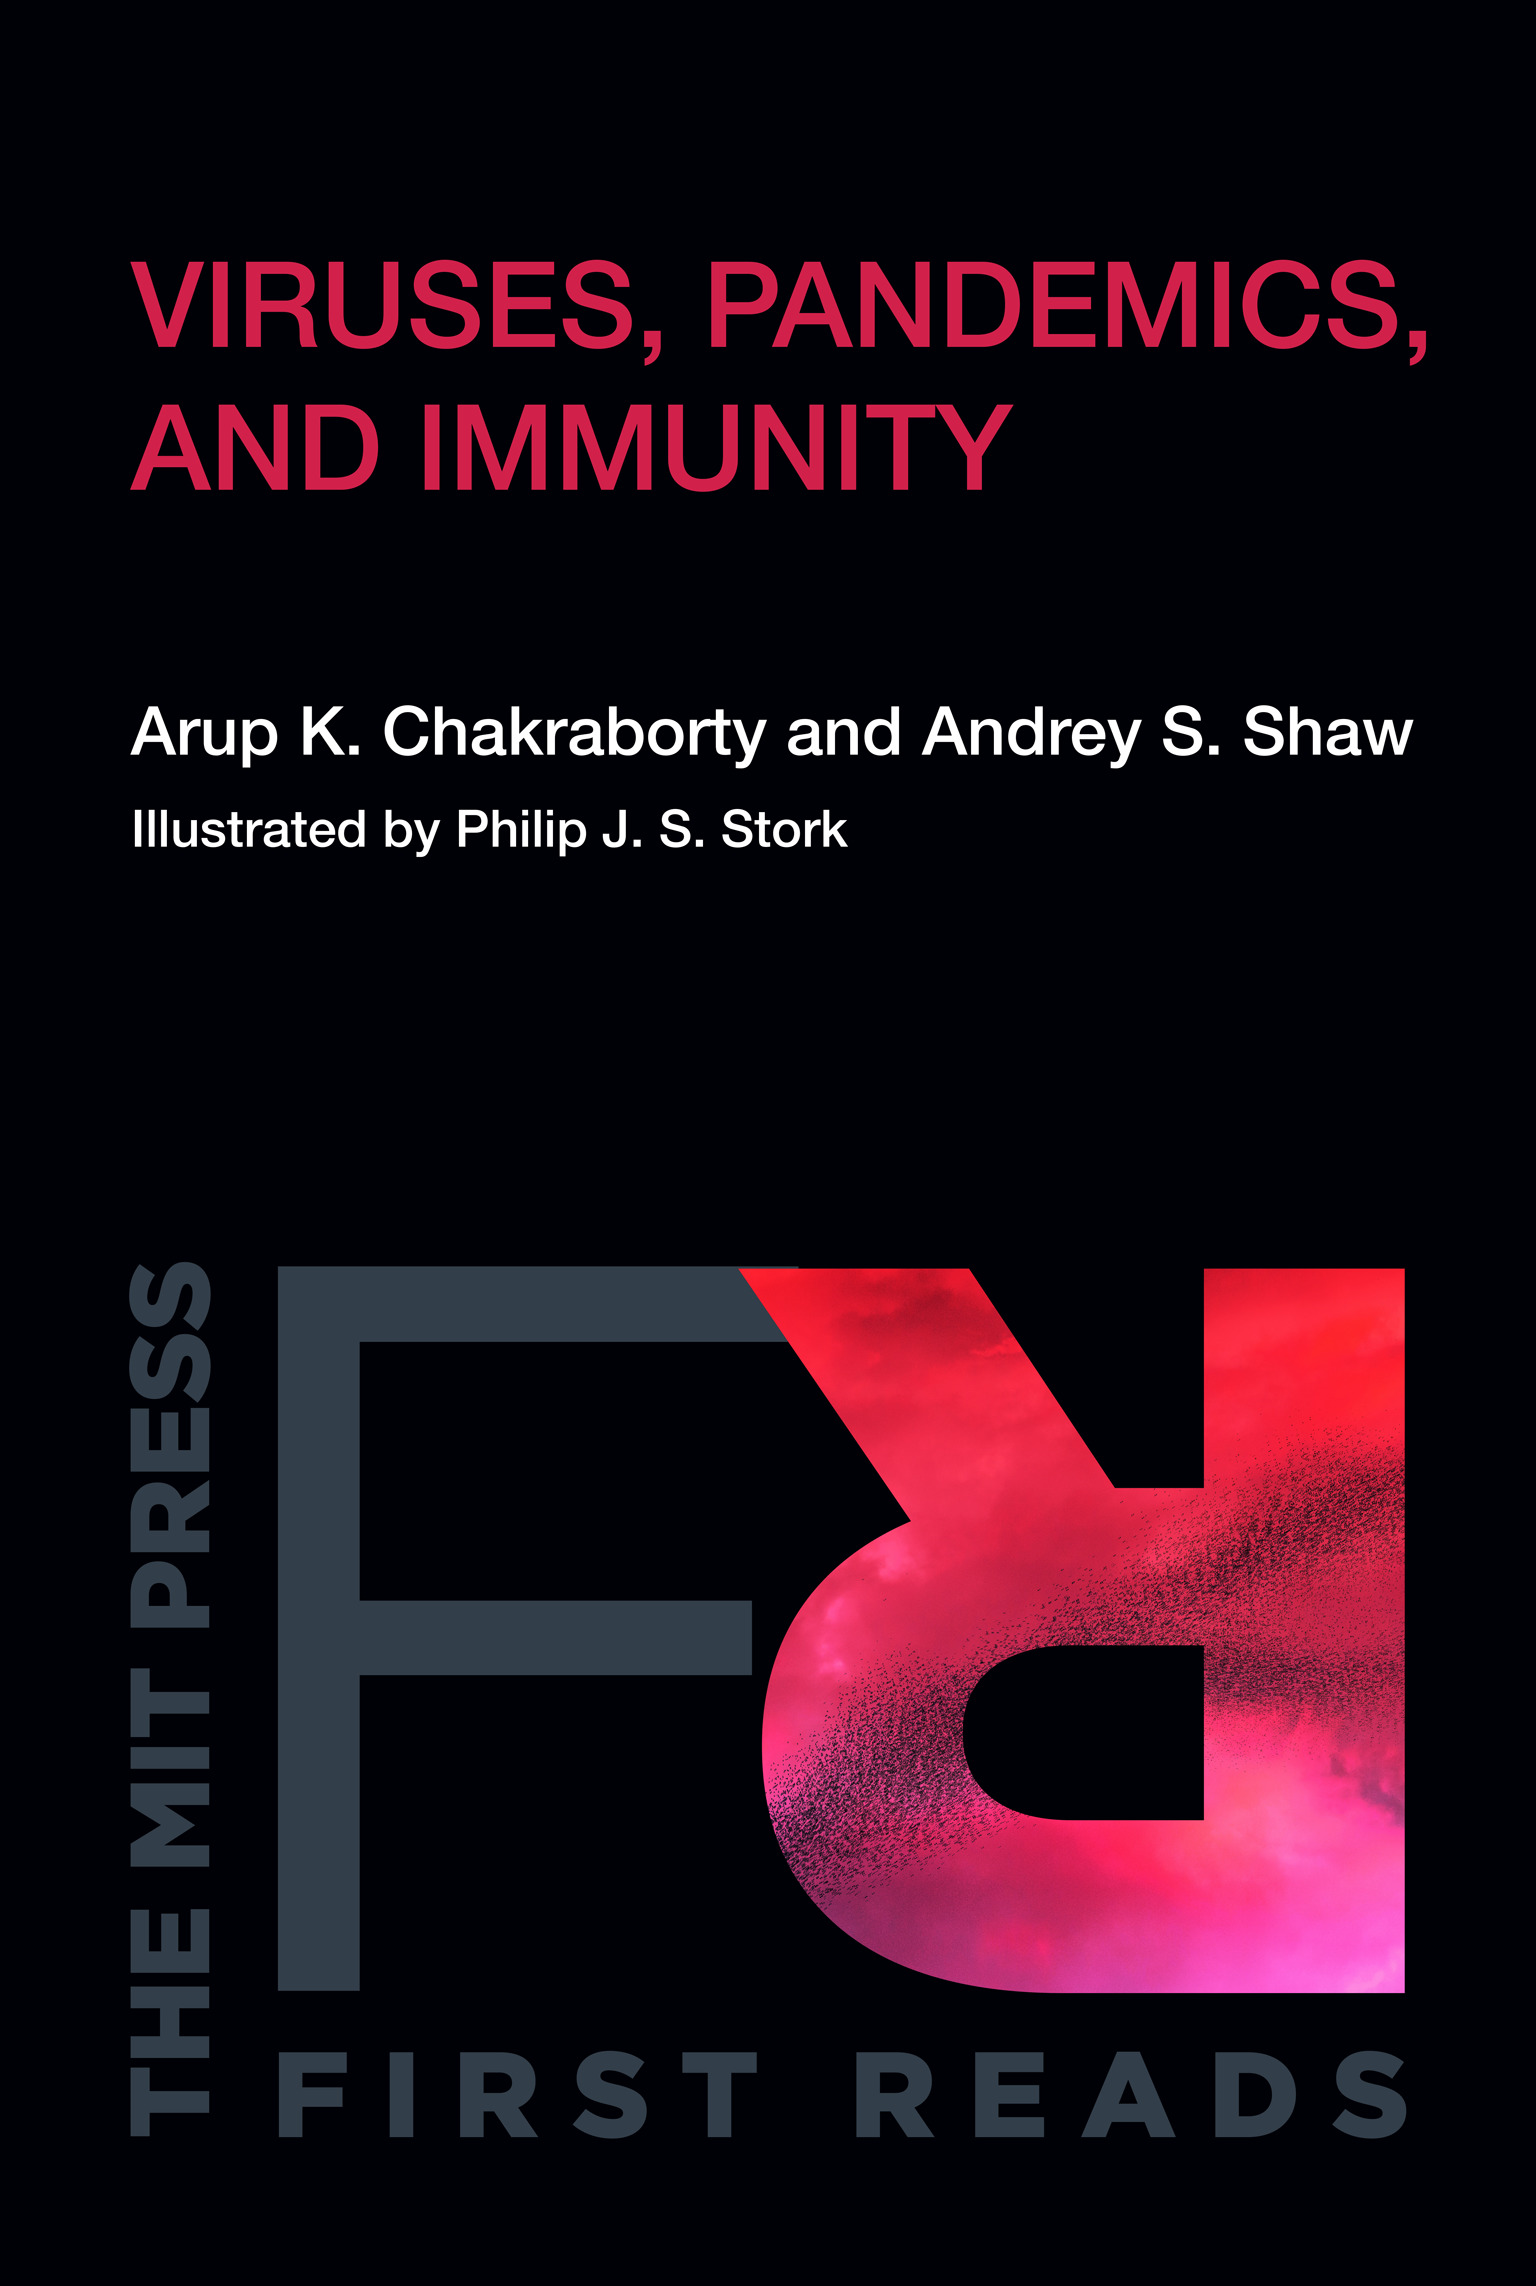 Viruses, Pandemics, and Immunity